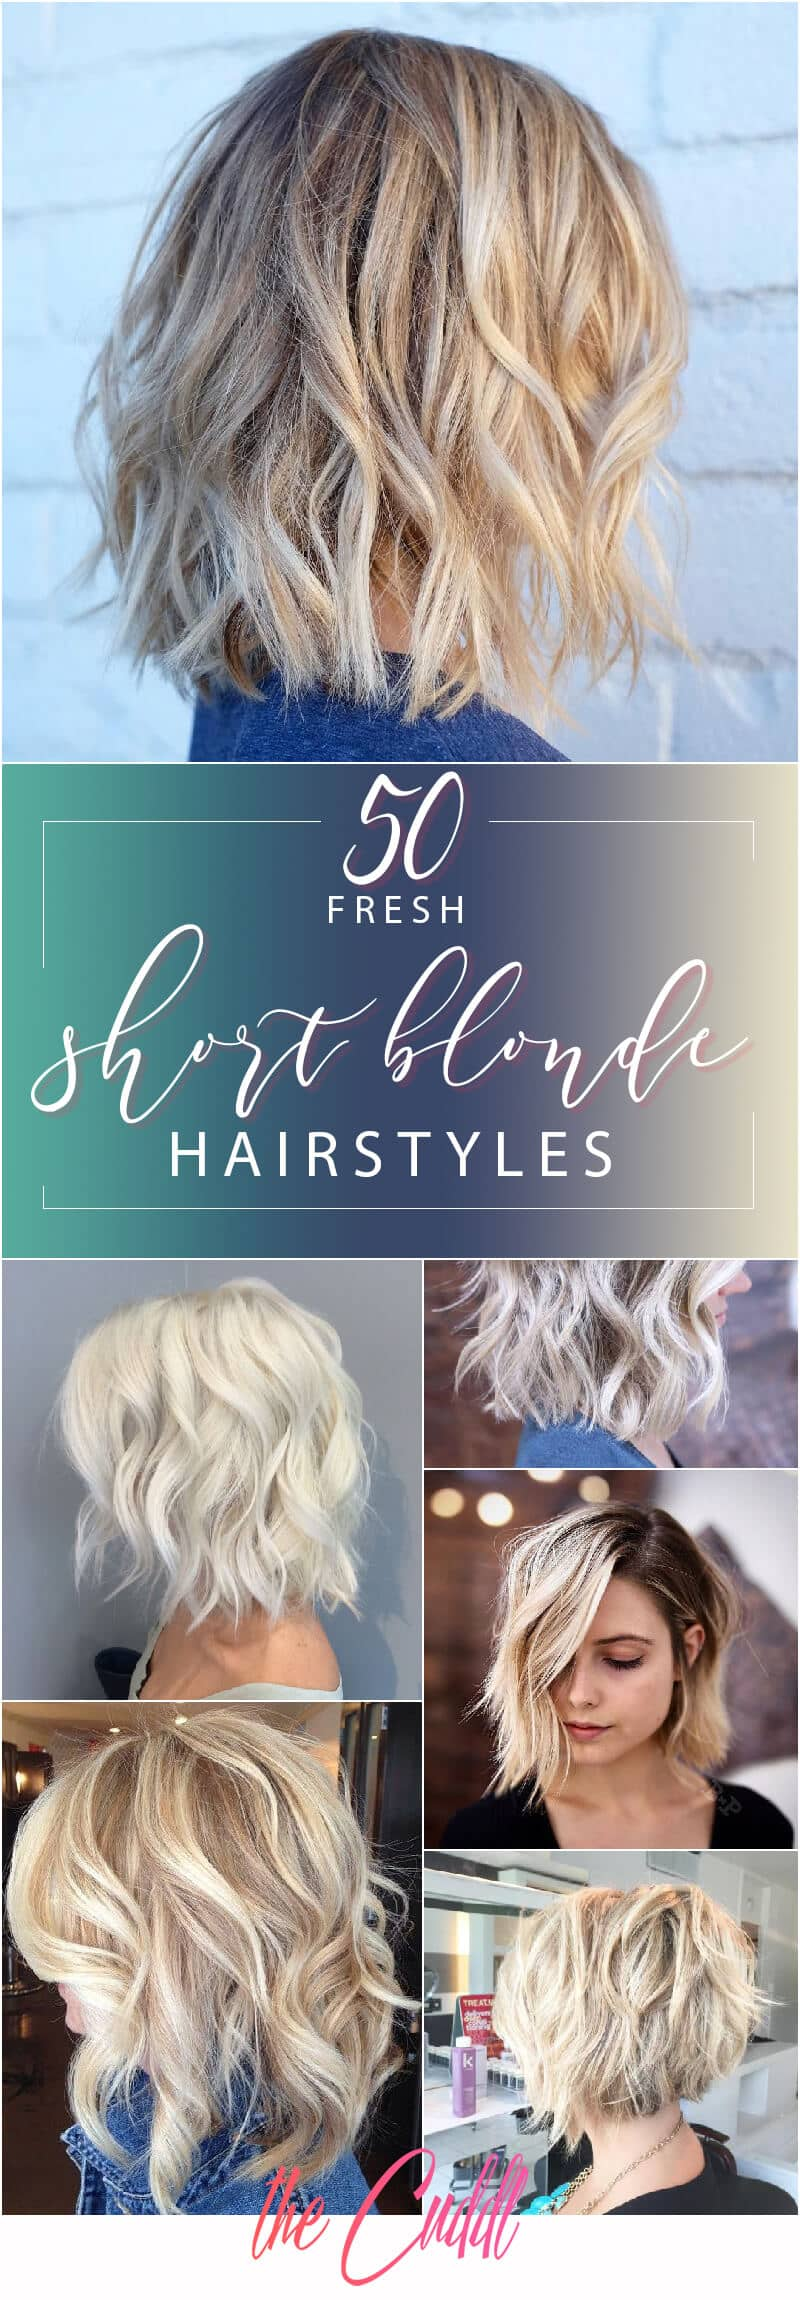 50 Fresh Short Blonde Hair Ideas to Update Your Style for Spring